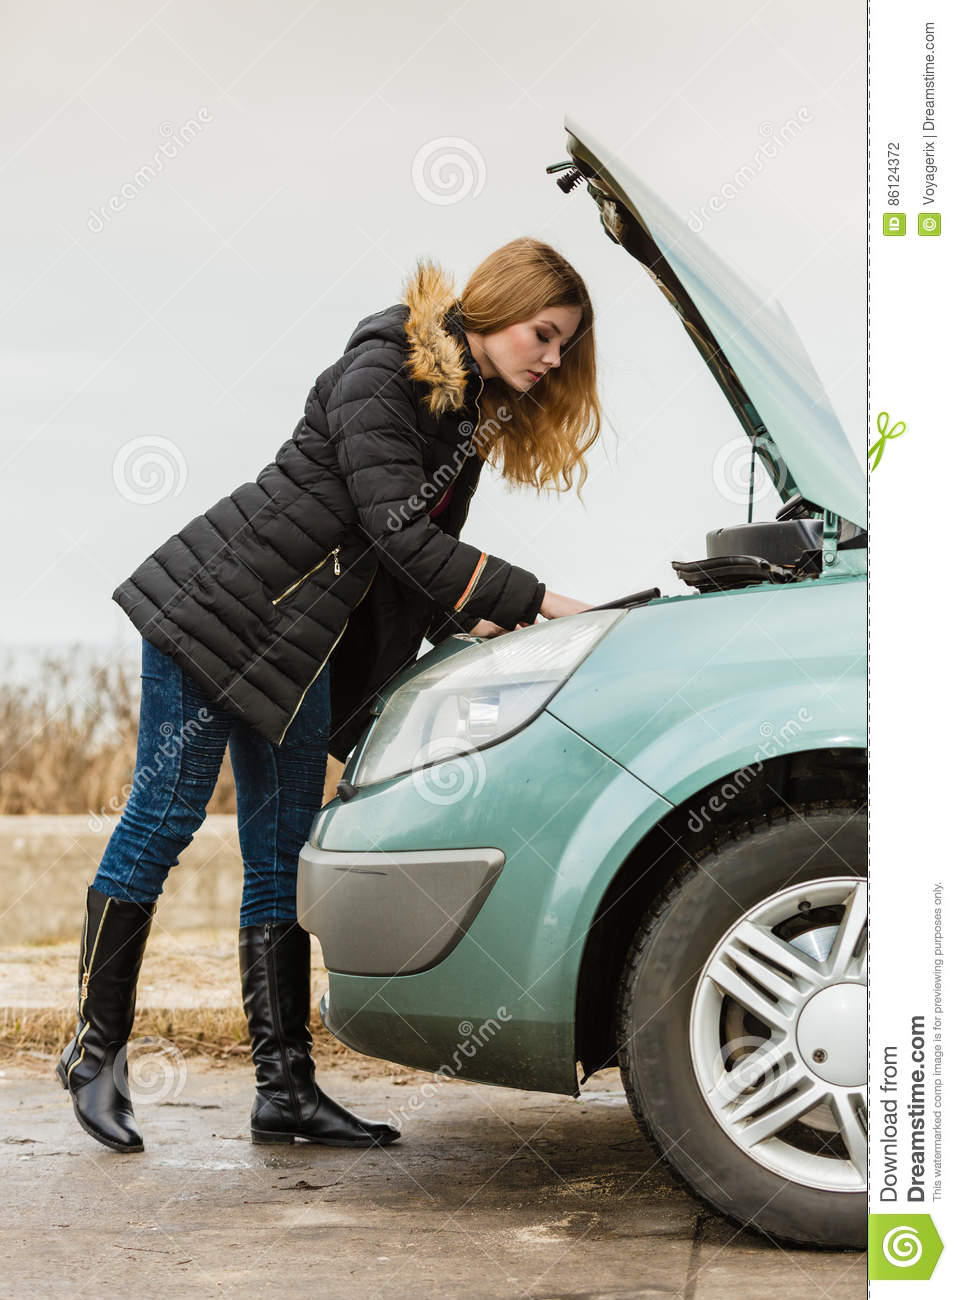 Blonde Woman And Broken Down Car On Road Stock Photo - Image of ...